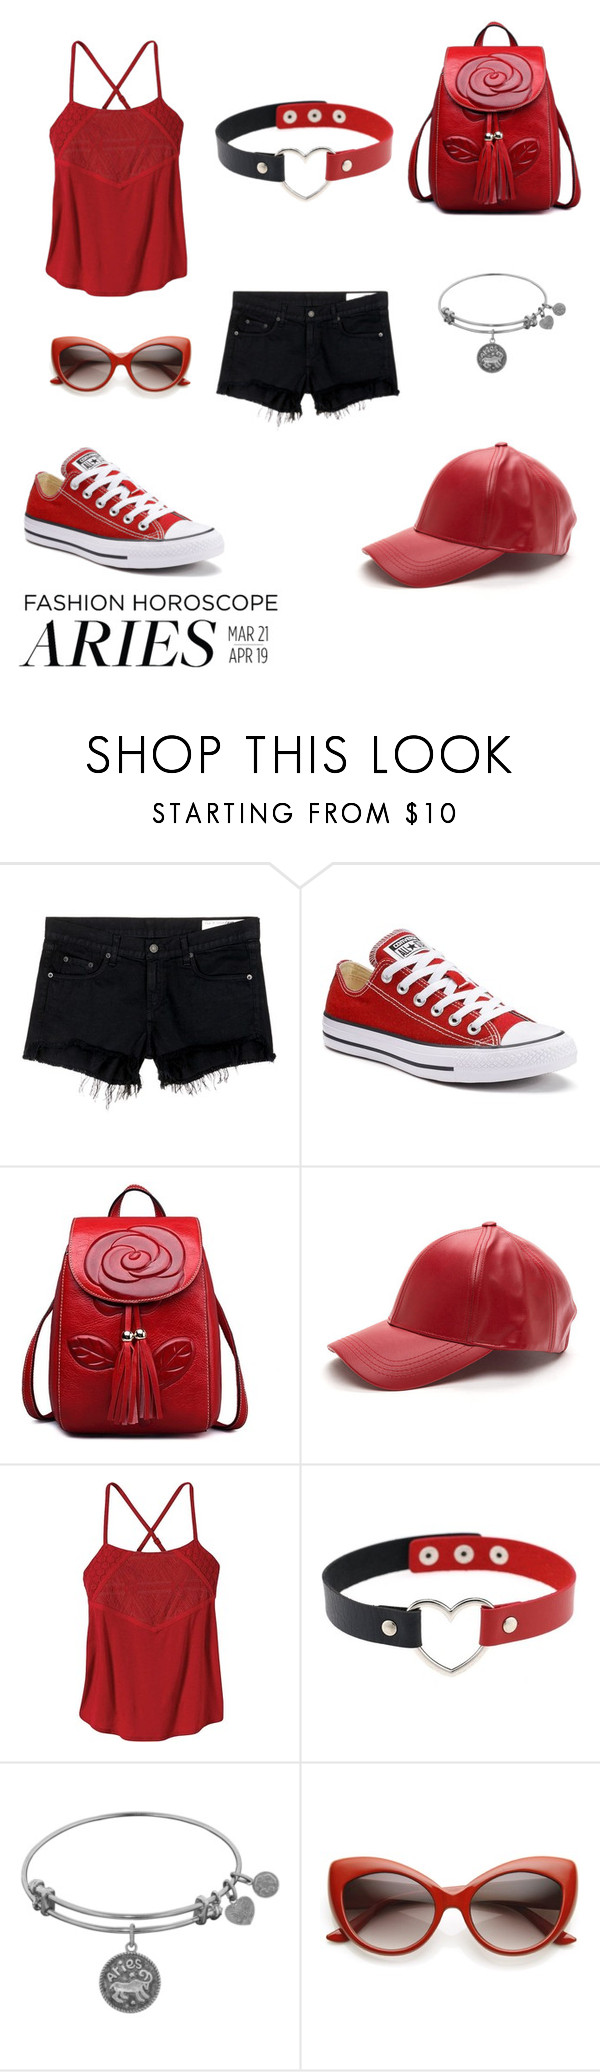 """Aries"" by disneybound-mexico ❤ liked on Polyvore featuring rag & bone/JEAN, Converse, prAna, fashionhoroscope and stylehoroscope"